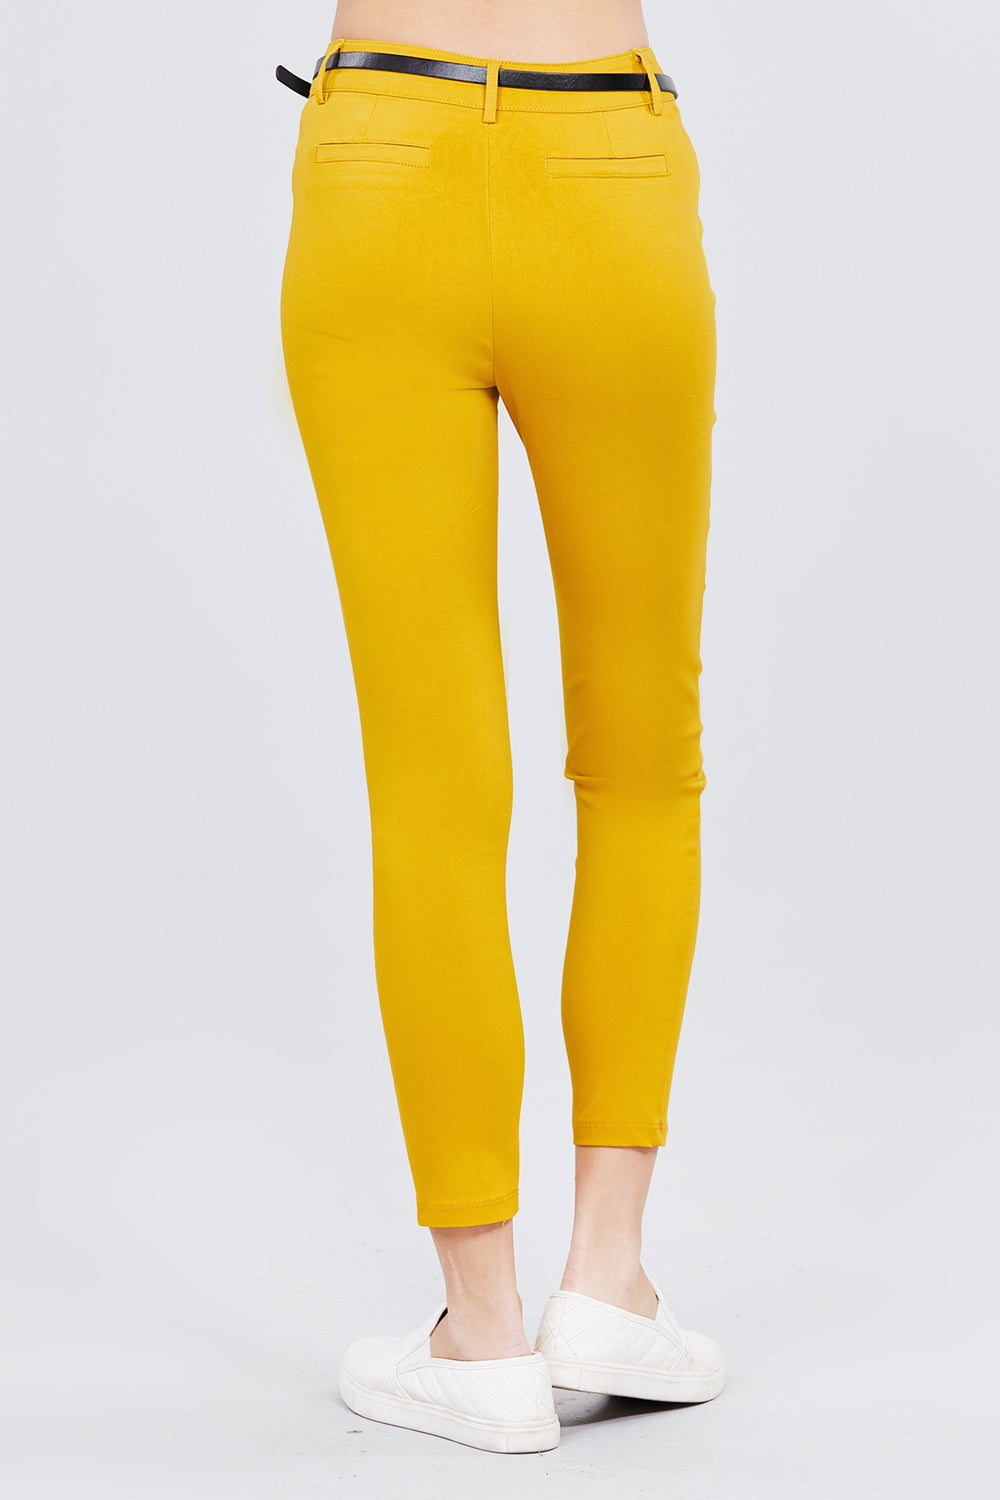 Bengaline Belted Pants - De Bawa Inc.